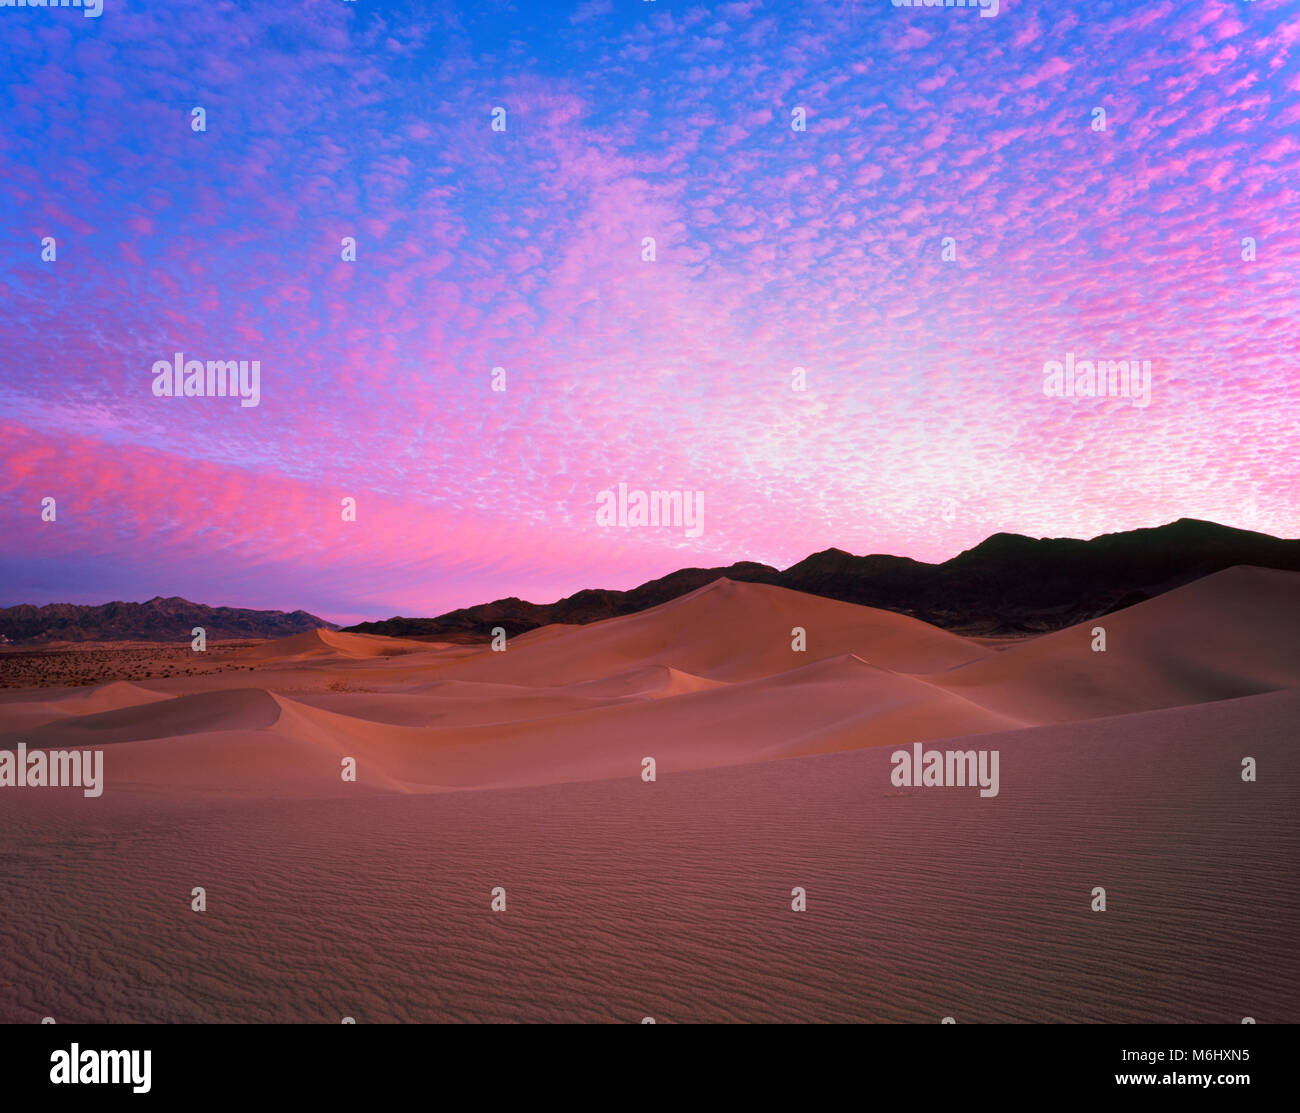 Dawn, Ibex Dunes, Death Valley National Park, California - Stock Image